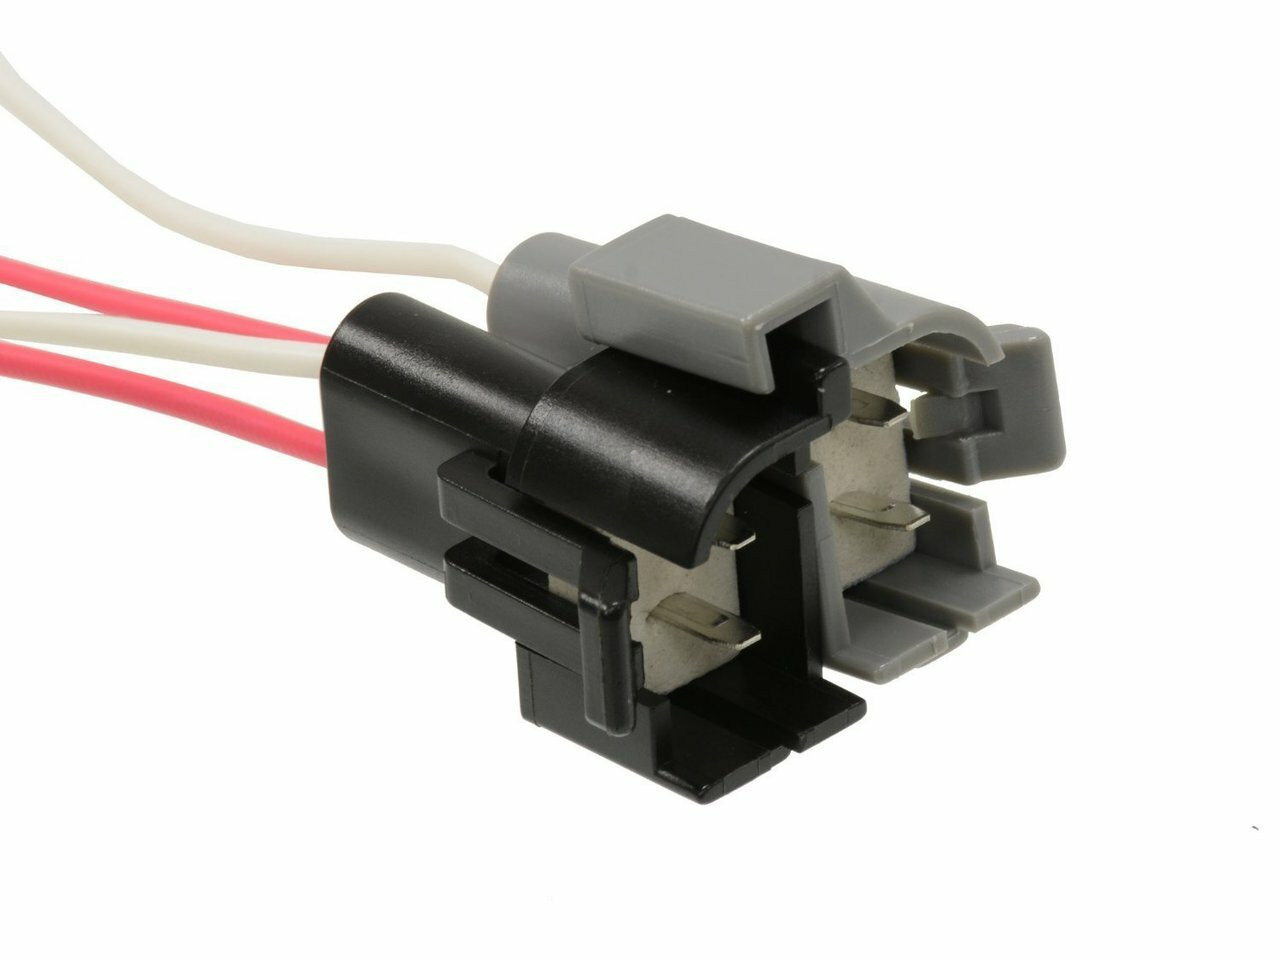 small resolution of michgian motorsports lt1 ignition coil wire harness set tpi tbi rh michiganmotorsports com tbi conversion wiring harness small block tbi wiring harness